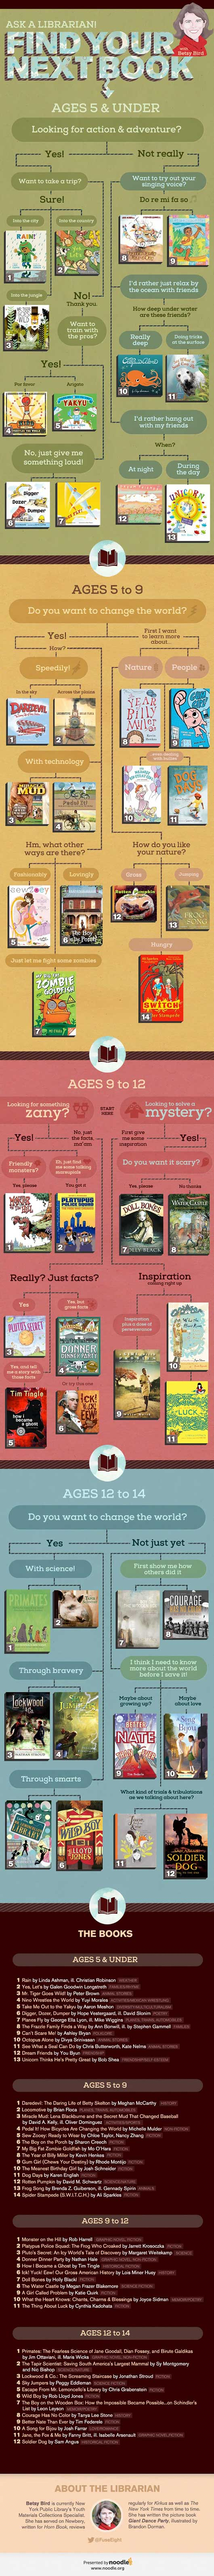 National Book Month-Infographic